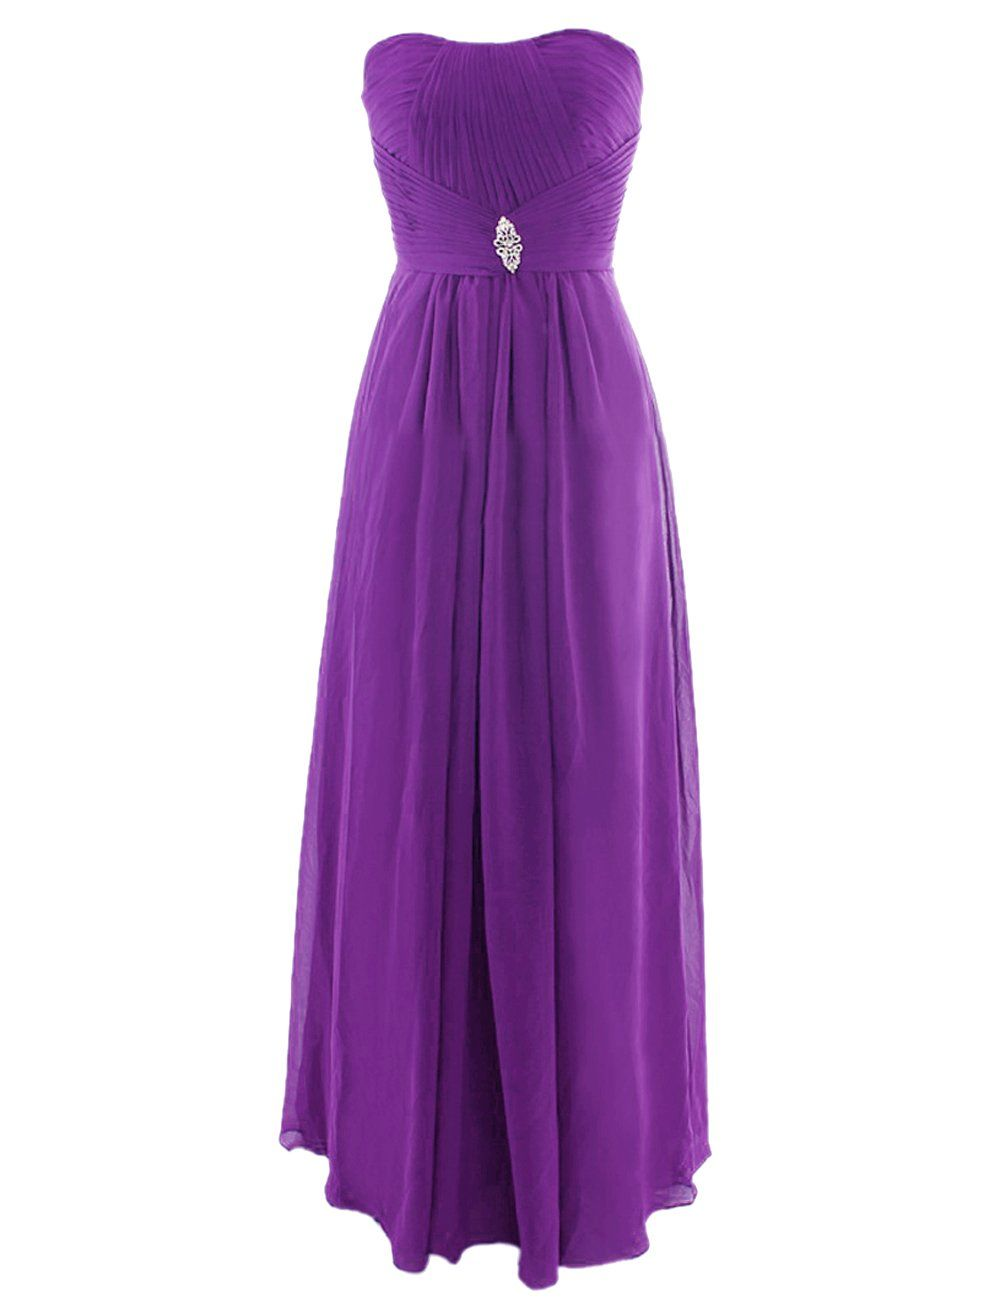 Diyouth Strapless Long Bridesmaid Dresses Beading Chiffon Prom Party ...